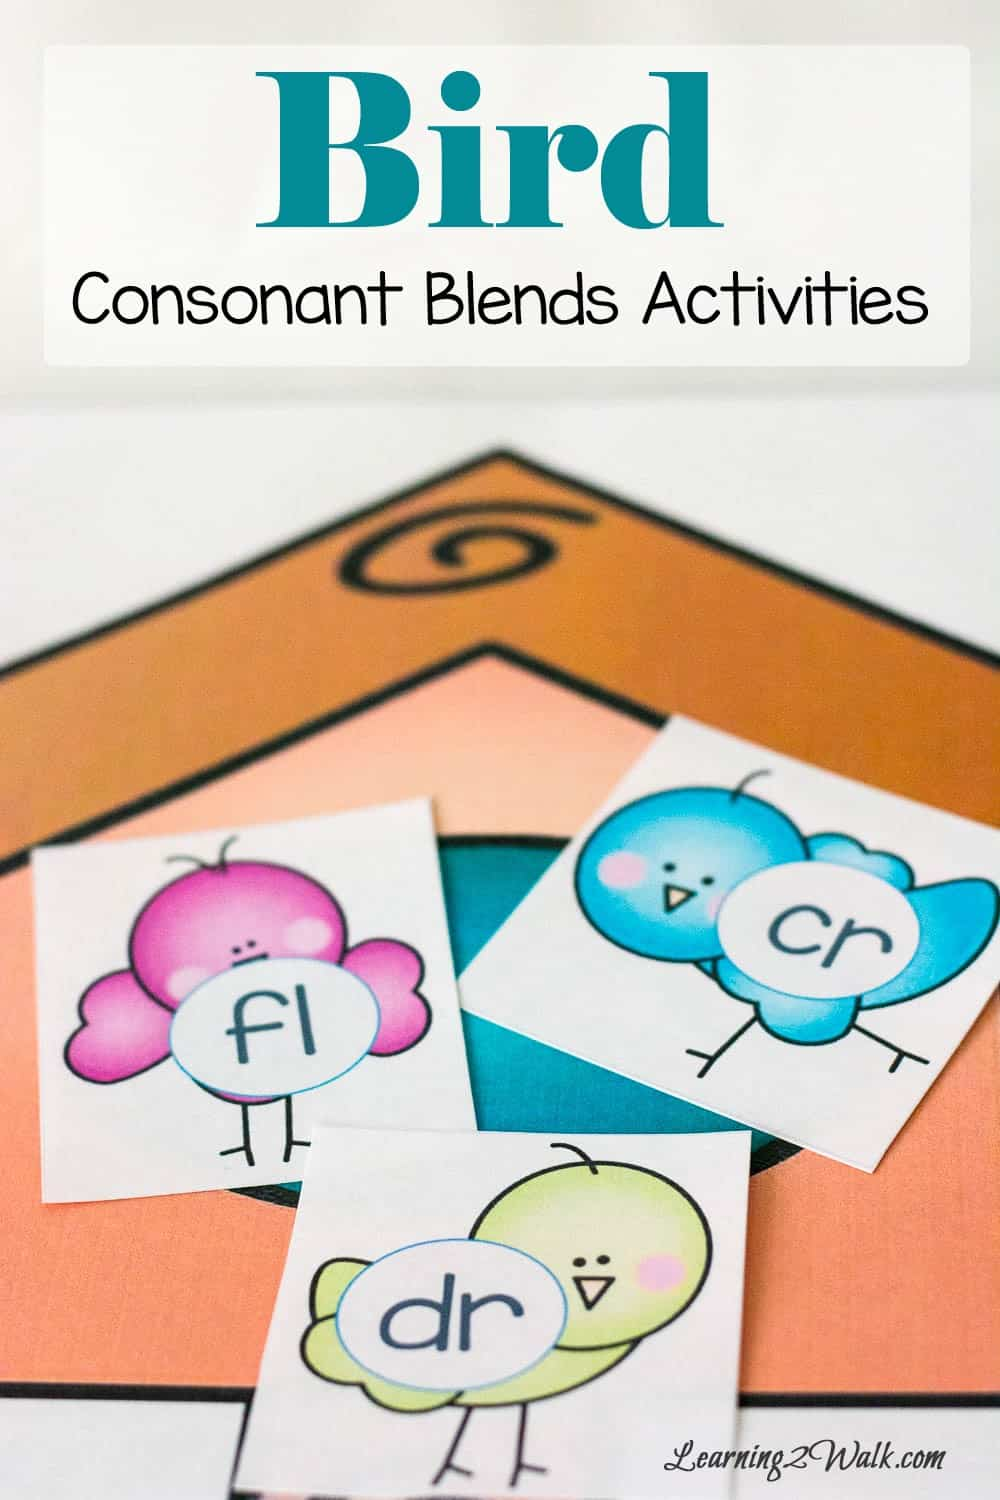 Seriously, how cute are these bird consonant blends activities cards? This definitely helps my daughter work on her blends which helps her learn to read